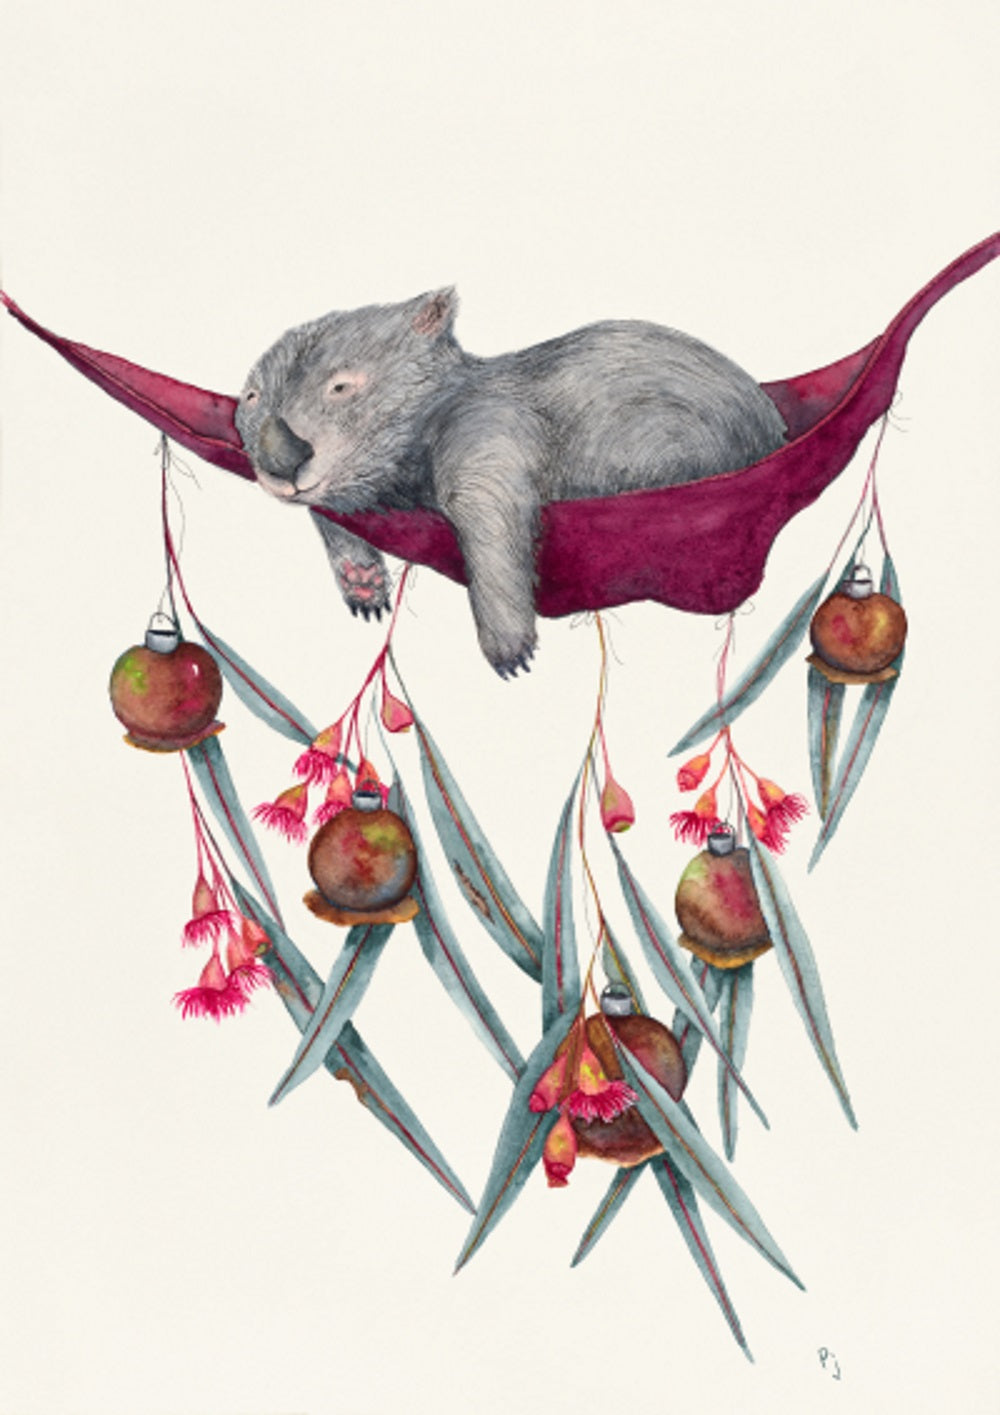 This is a print of my original watercolour painting of a sleepy wombat in a hammock. The hammock has been decorated with gum nuts and flowers.